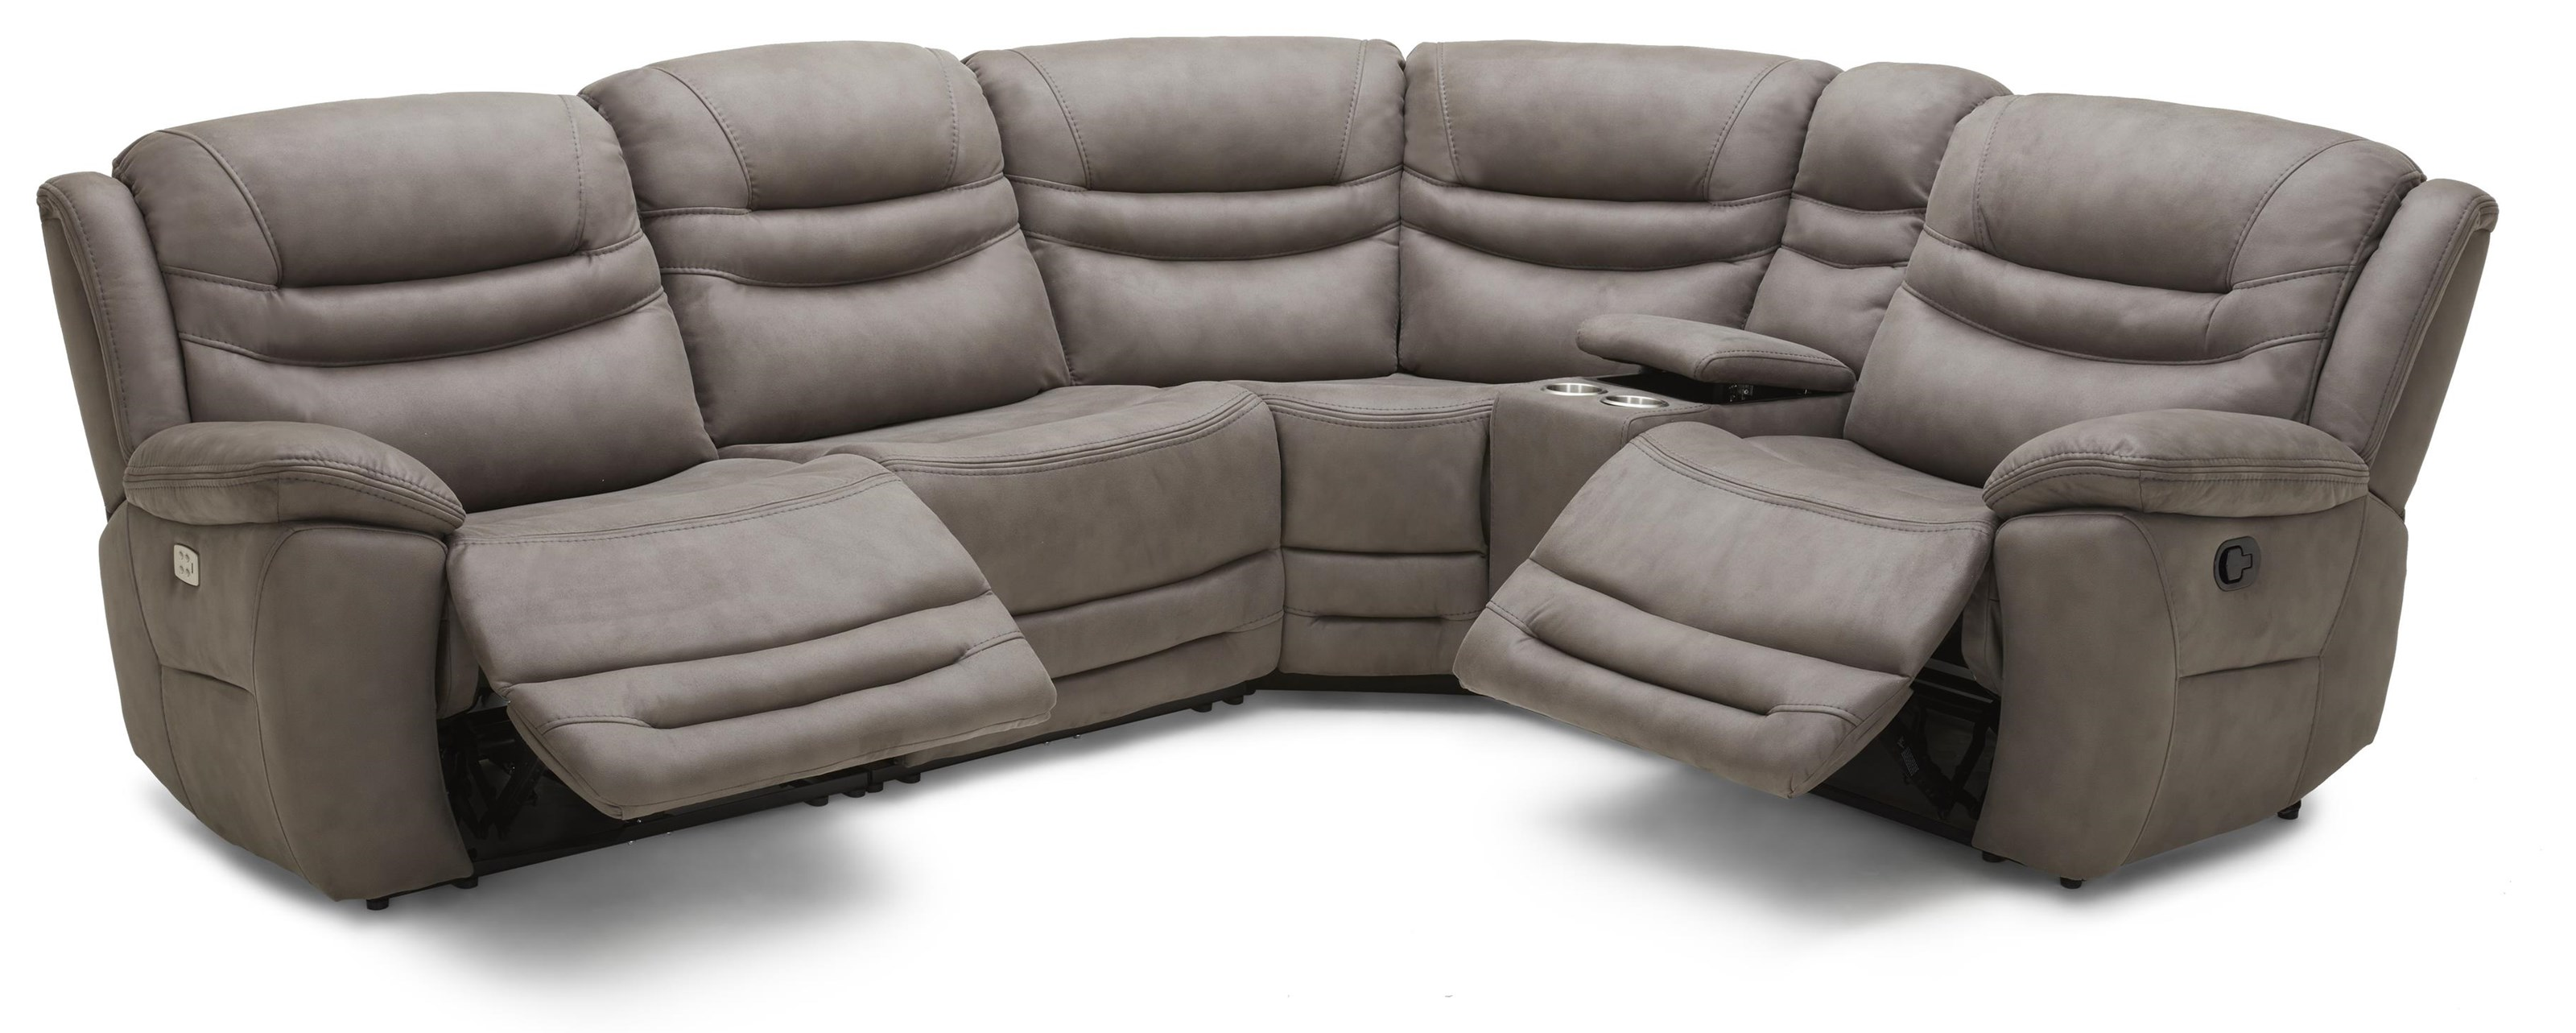 Damian Modular PWR Sectional W/ PWR Headrest by K.C. at Walker's Furniture